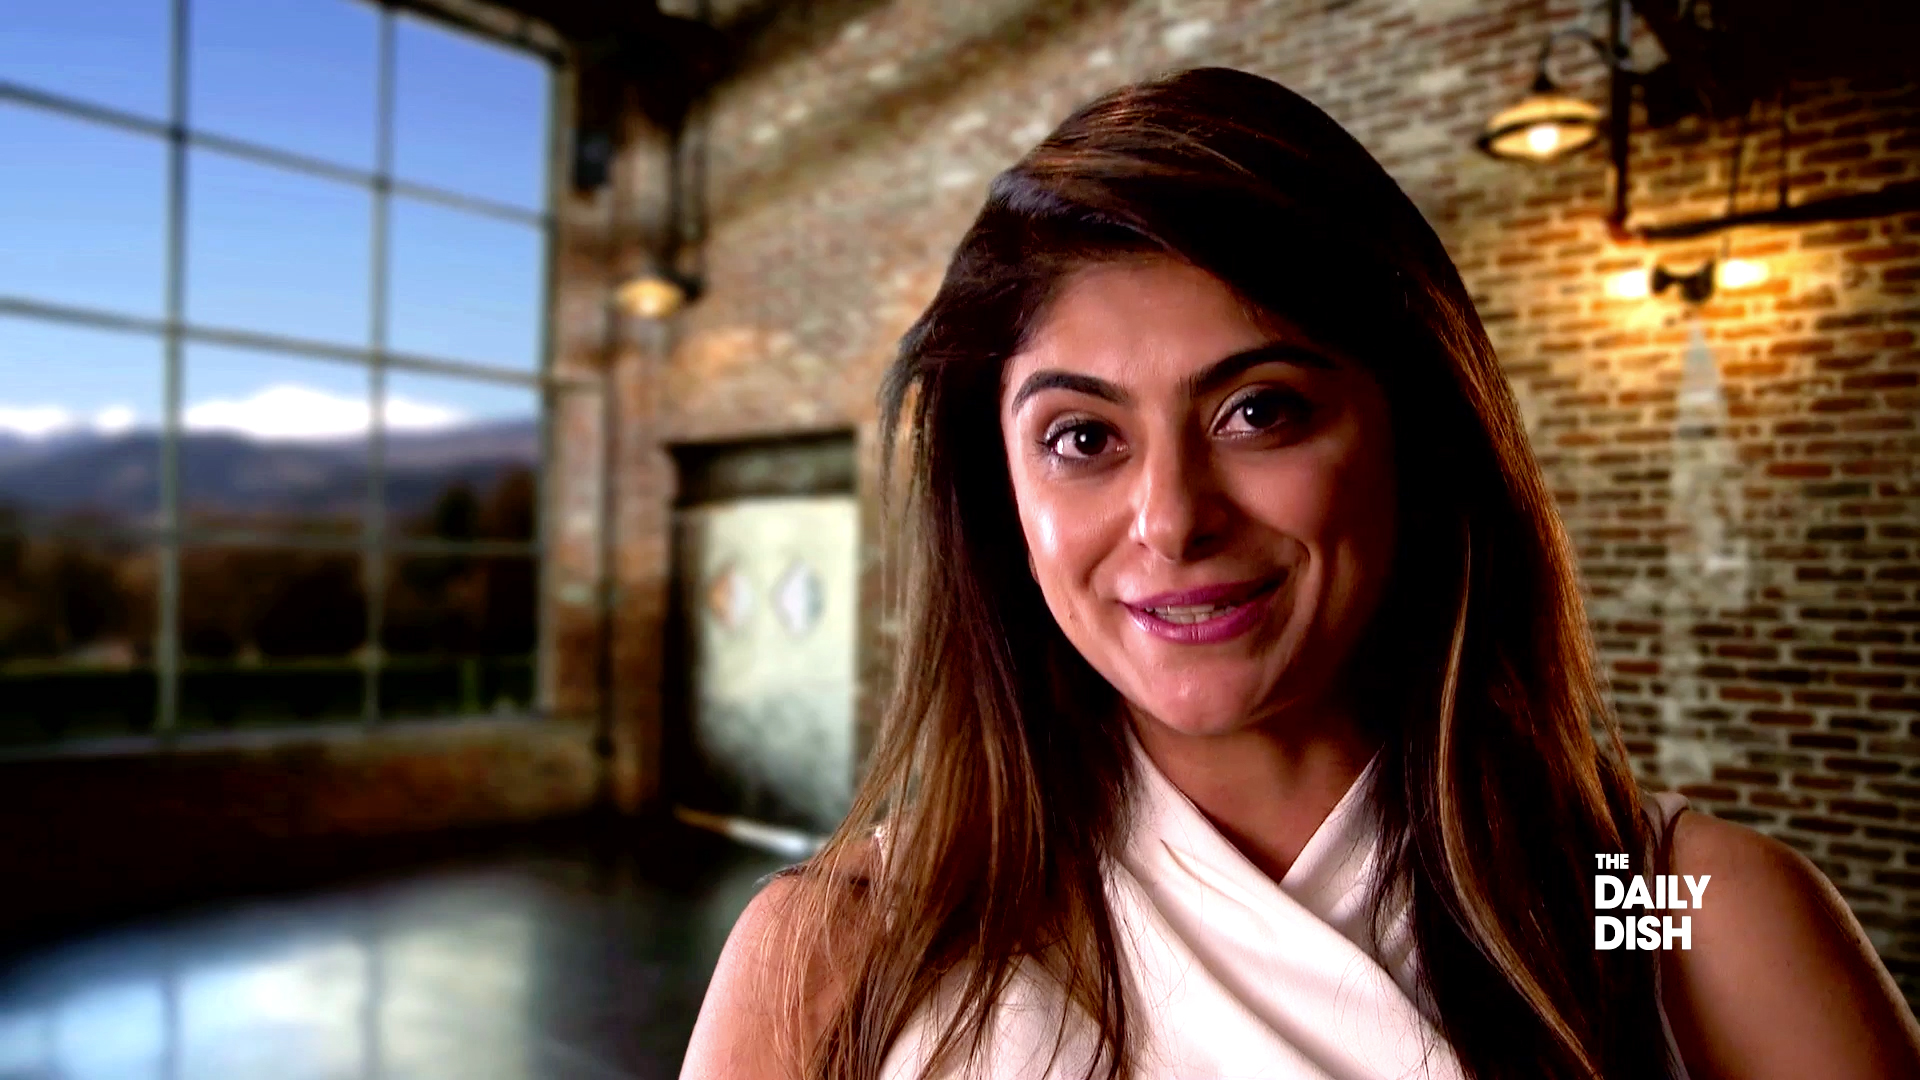 Top Chef Contestant Fatima Ali Has Died